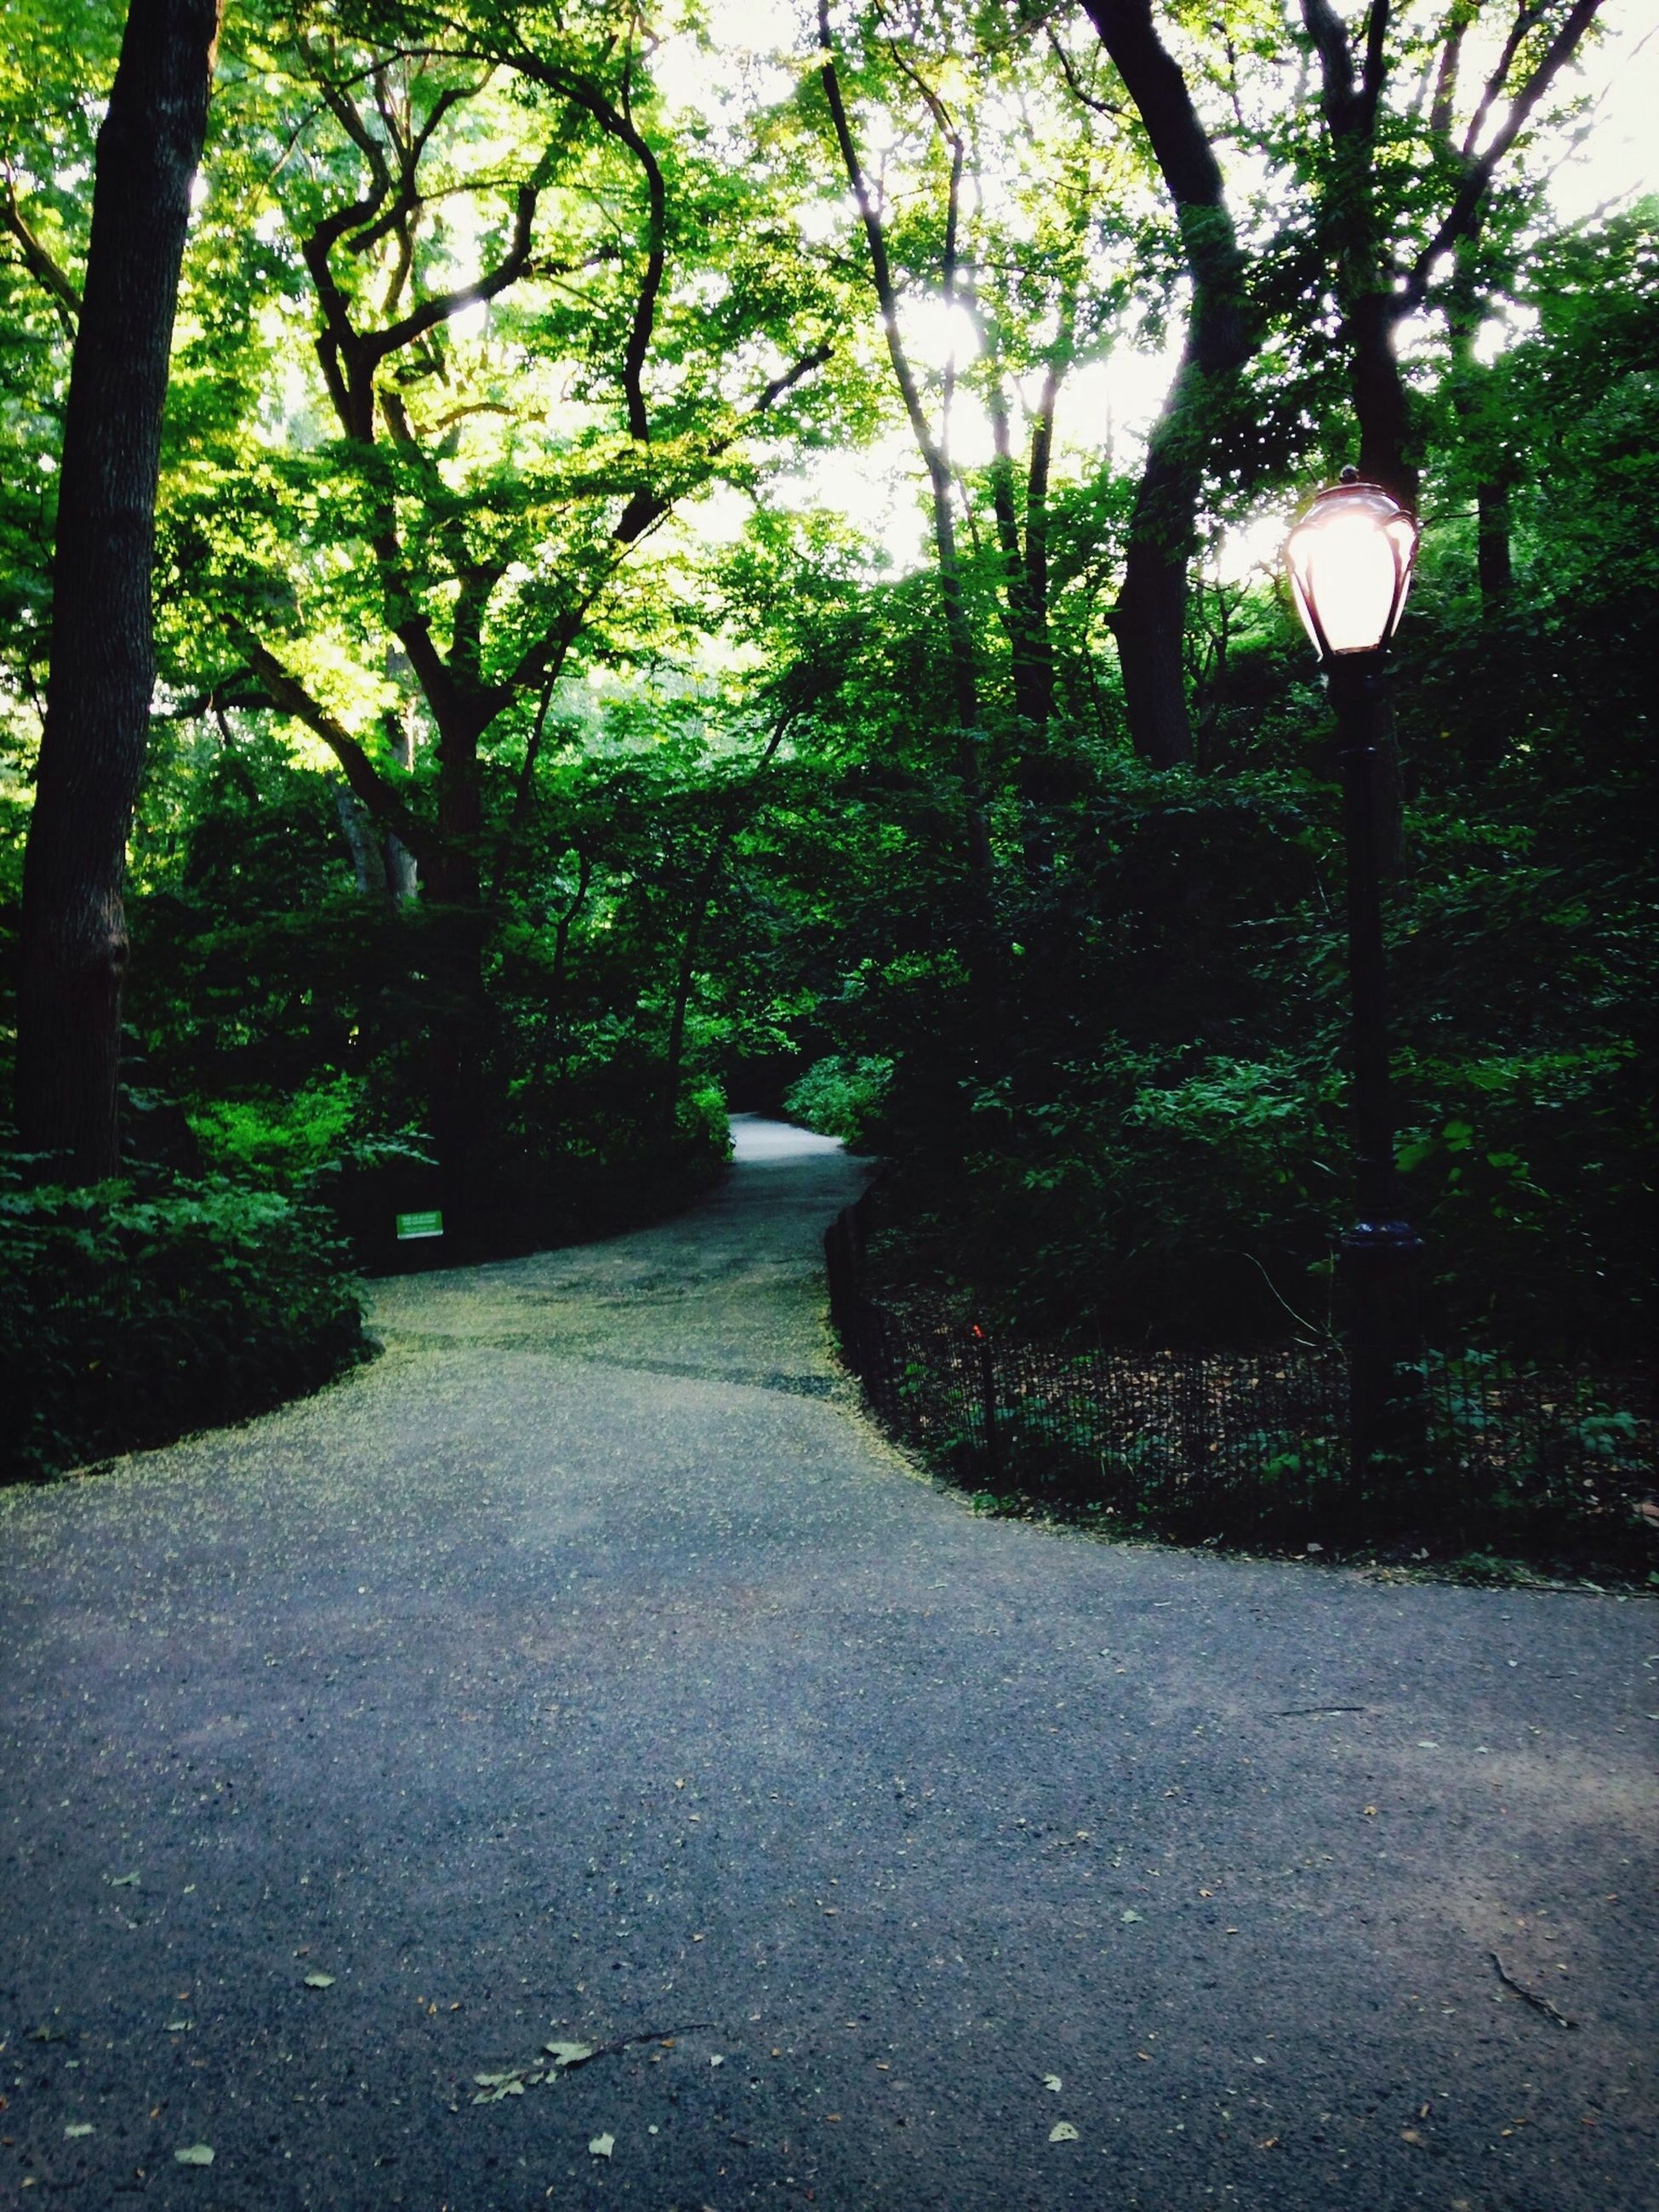 tree, the way forward, street light, growth, footpath, tranquility, branch, lighting equipment, nature, empty, park - man made space, tree trunk, sunlight, shadow, tranquil scene, walkway, street, diminishing perspective, green color, outdoors